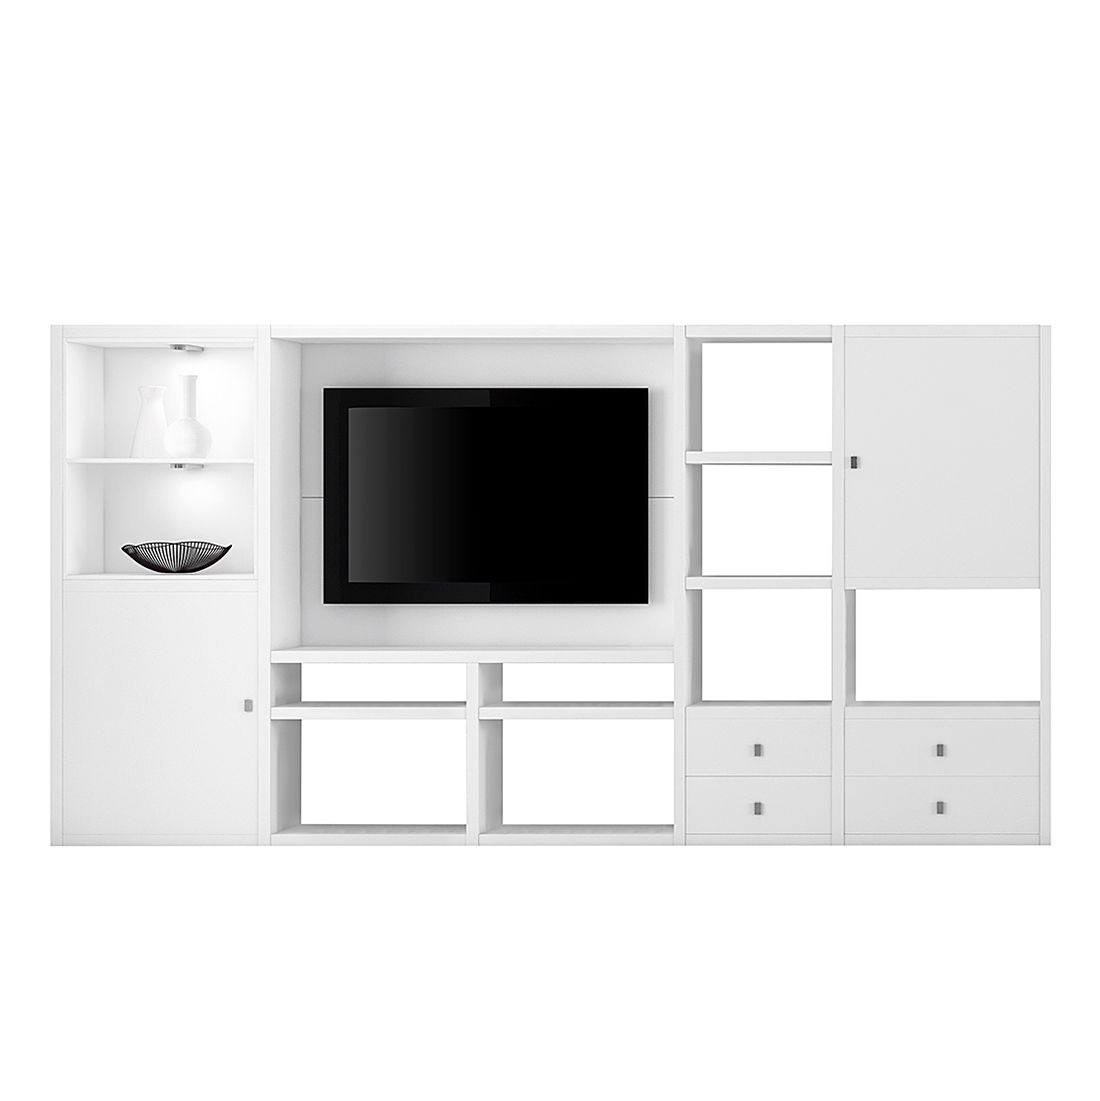 energie  A+, Tv-wand Emporior I - inclusief verlichting - Wit, Fredriks